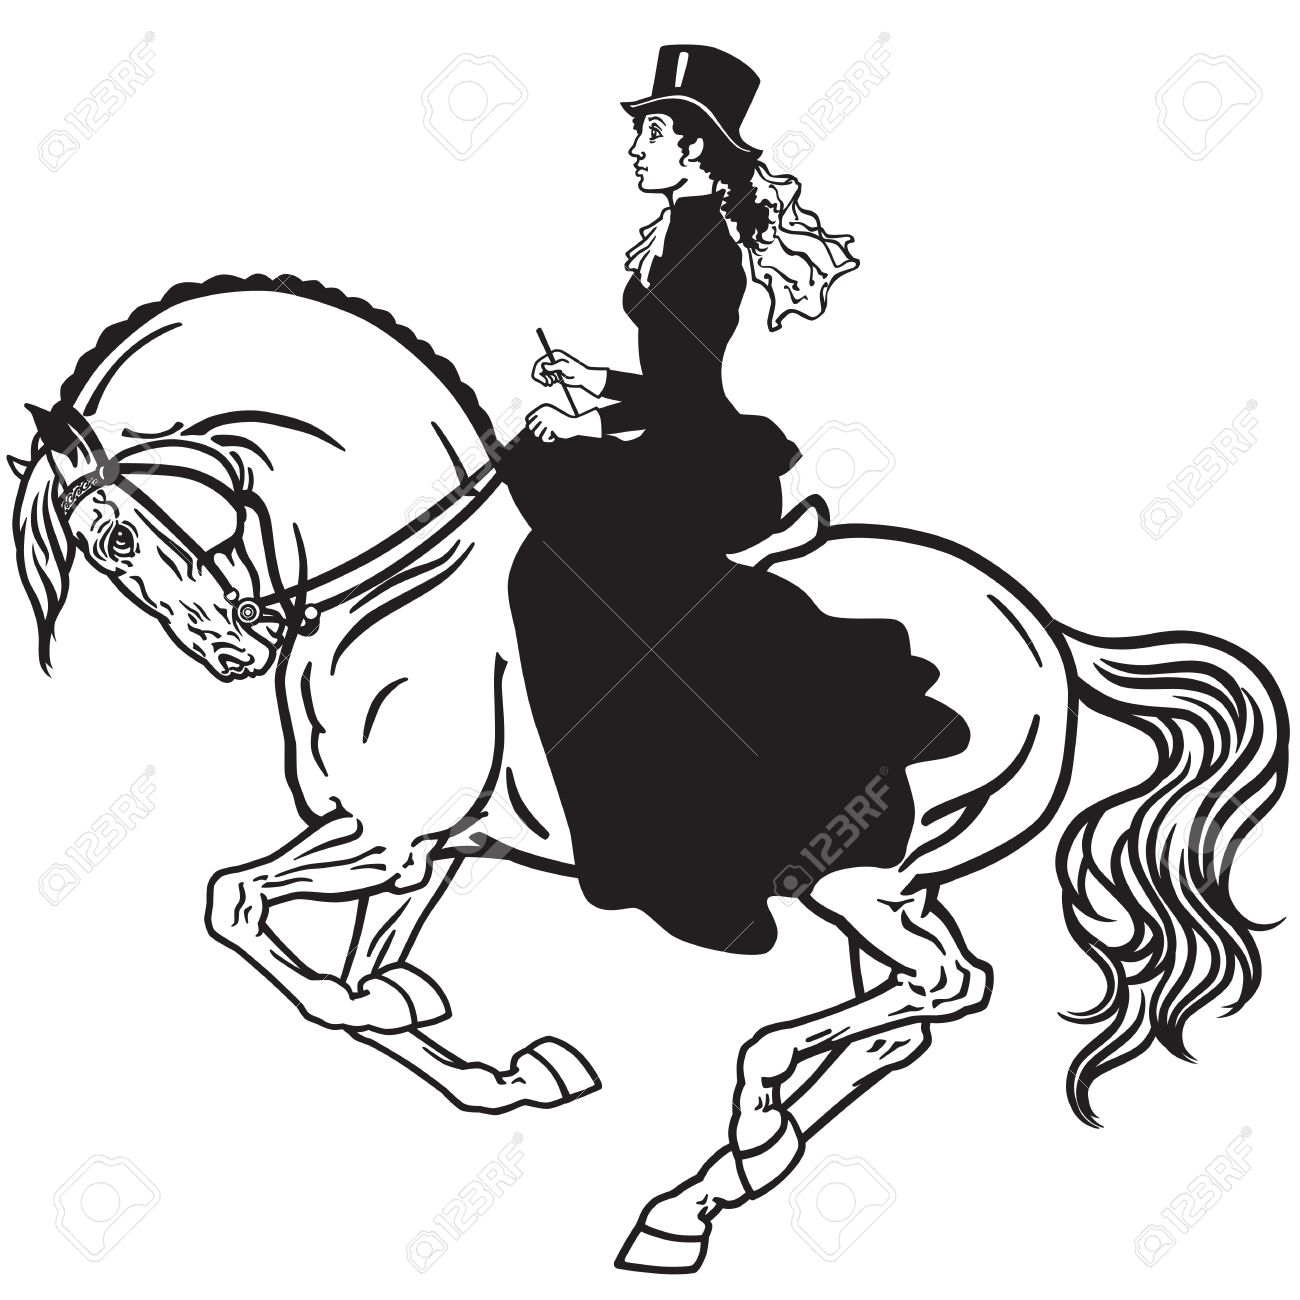 Lady Sitting On A Horse Woman Side Saddle Horseback Riding Royalty Free Cliparts Vectors And Stock Illustration Image 60741713